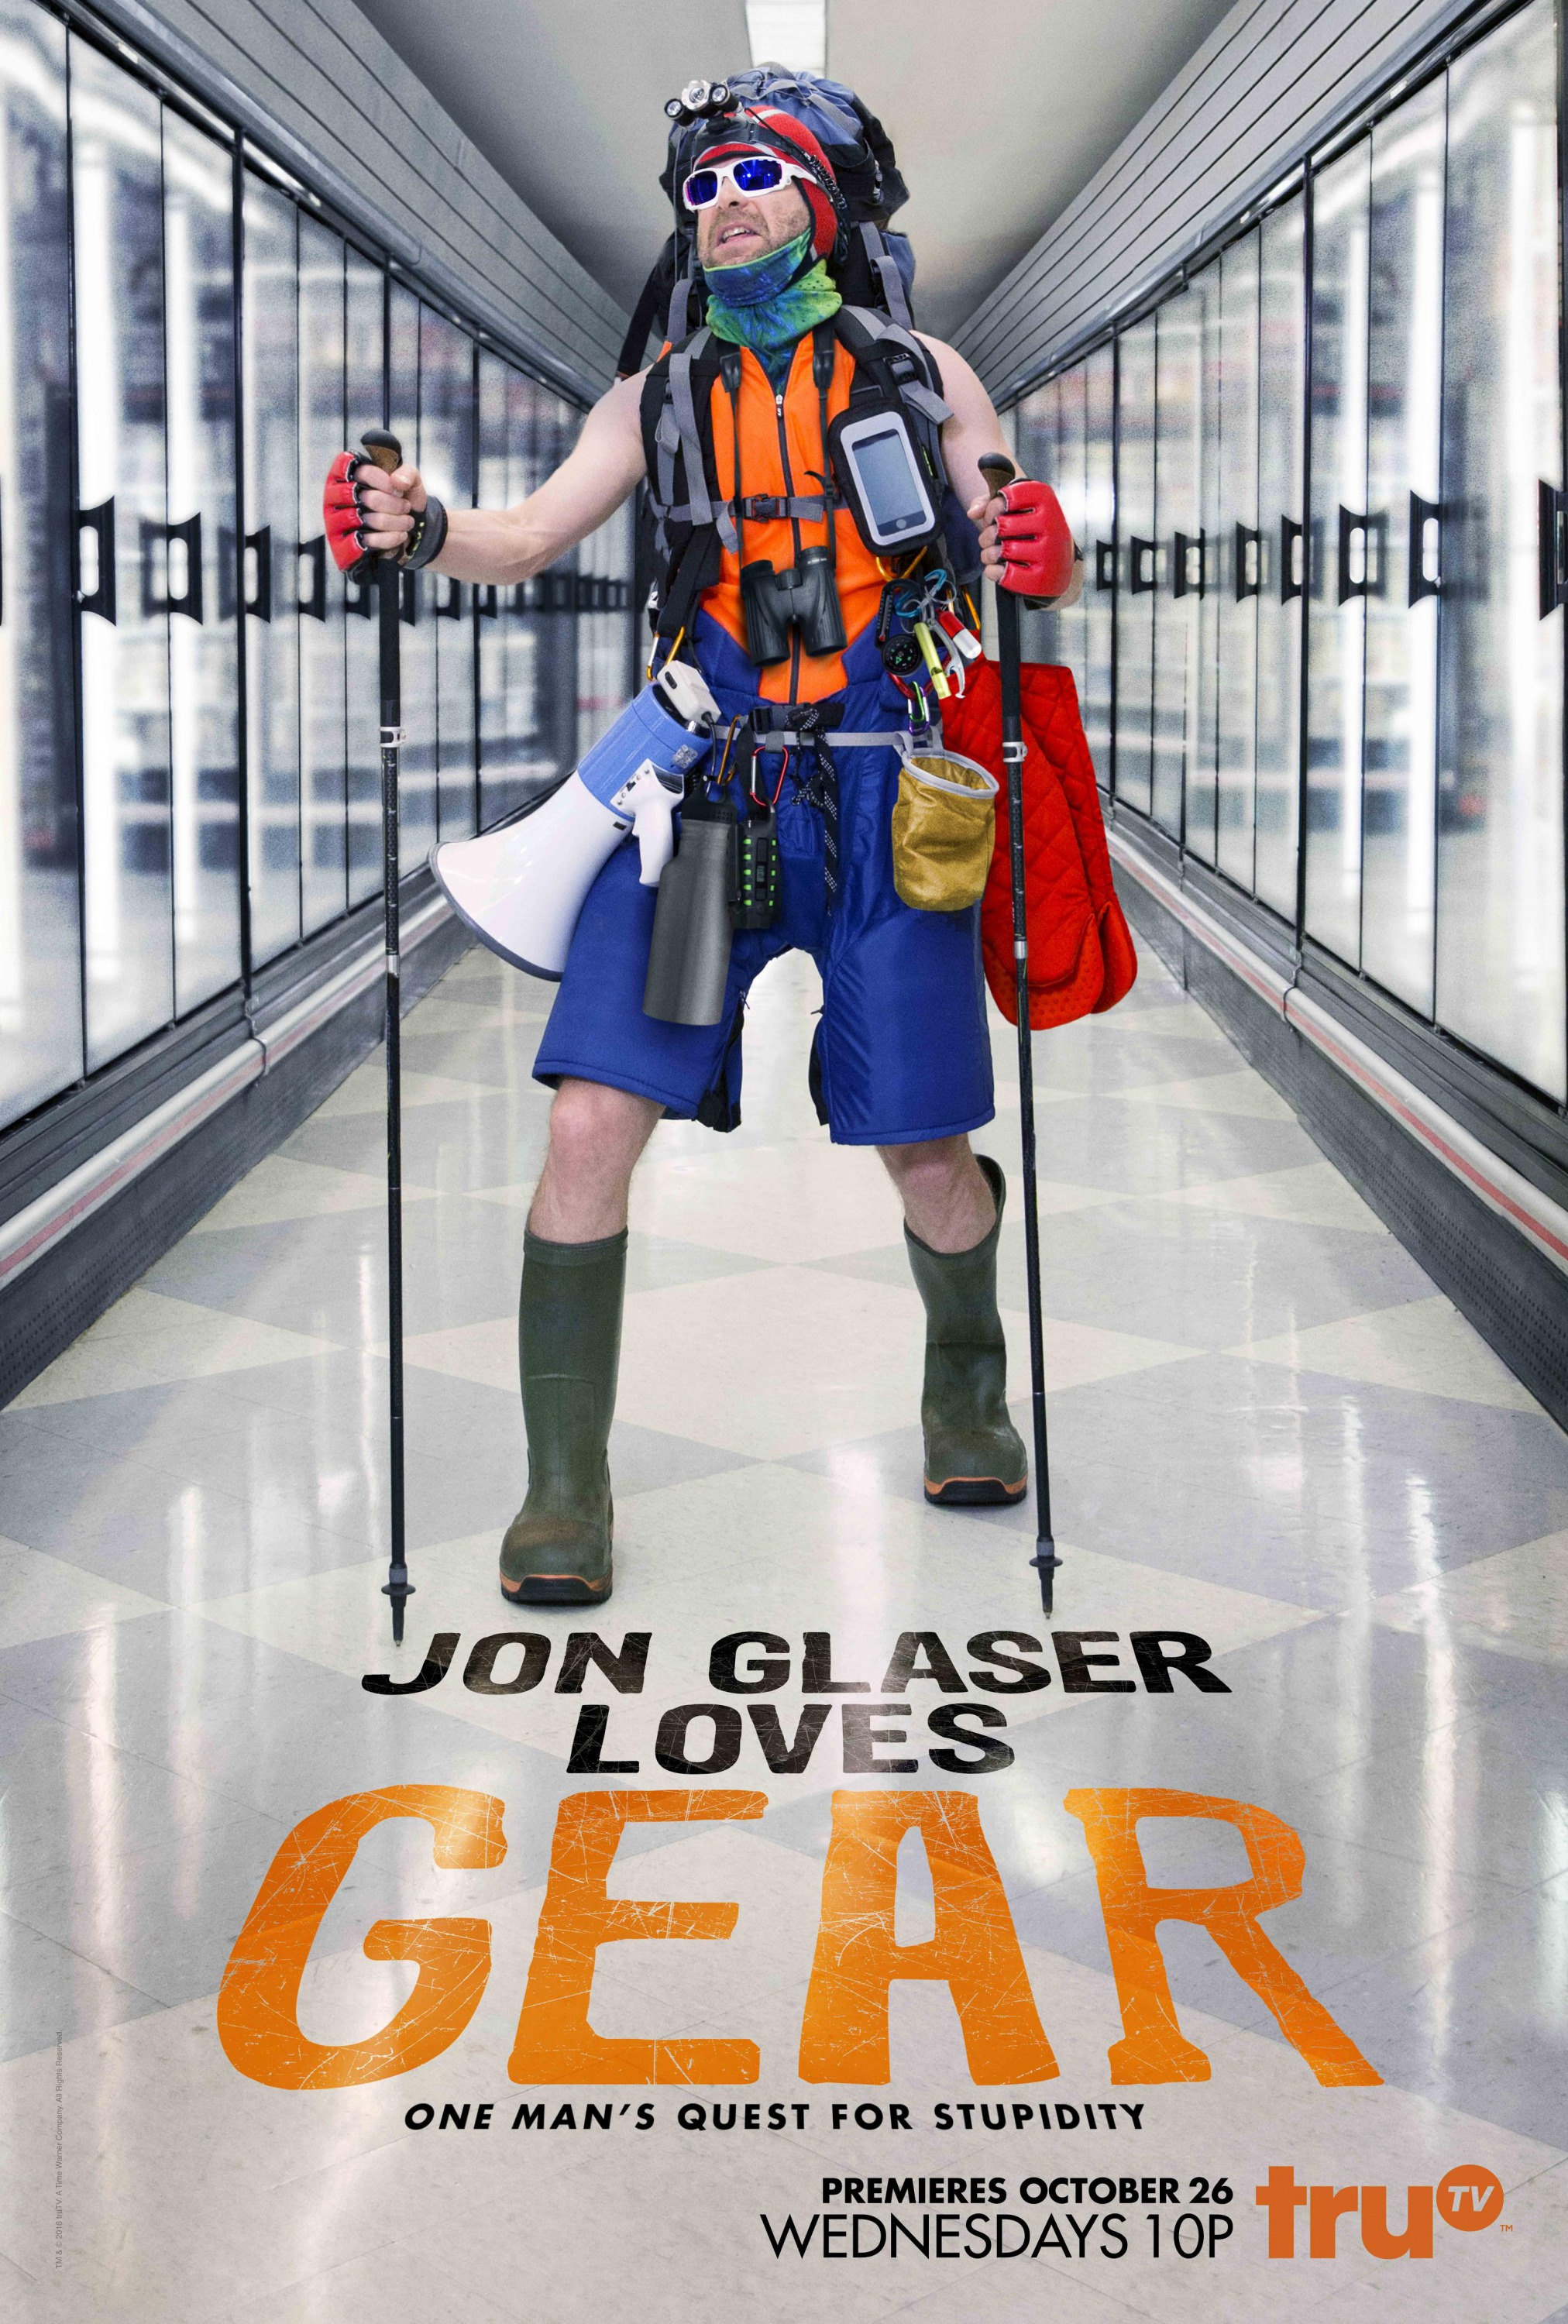 jon_glaser_loves_gear_ver2_xxlg